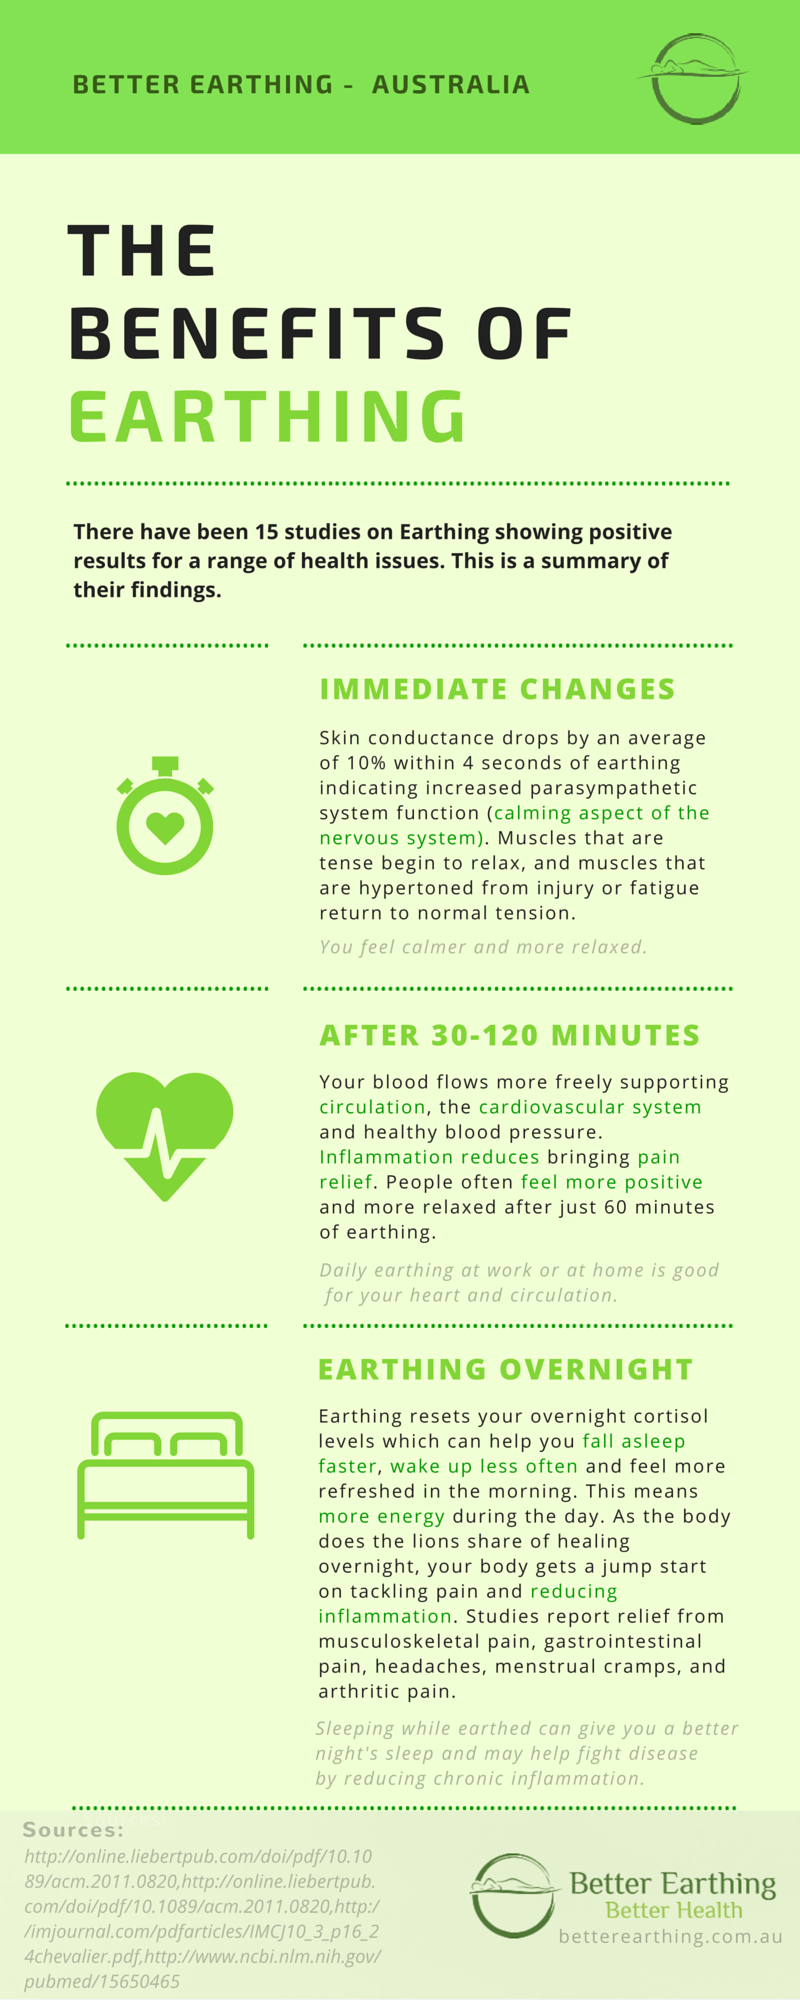 Benefits of Earthing infographic by Better Earthing